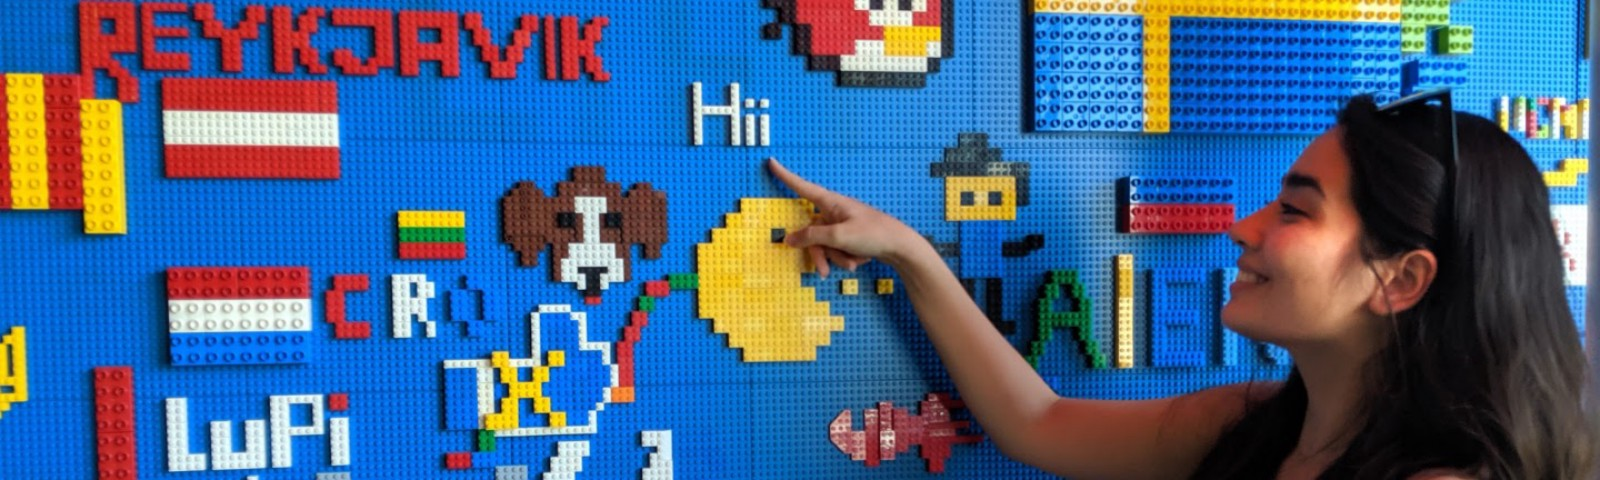 A person with long black hair smiles and points at a multi-colored wall made of legos.